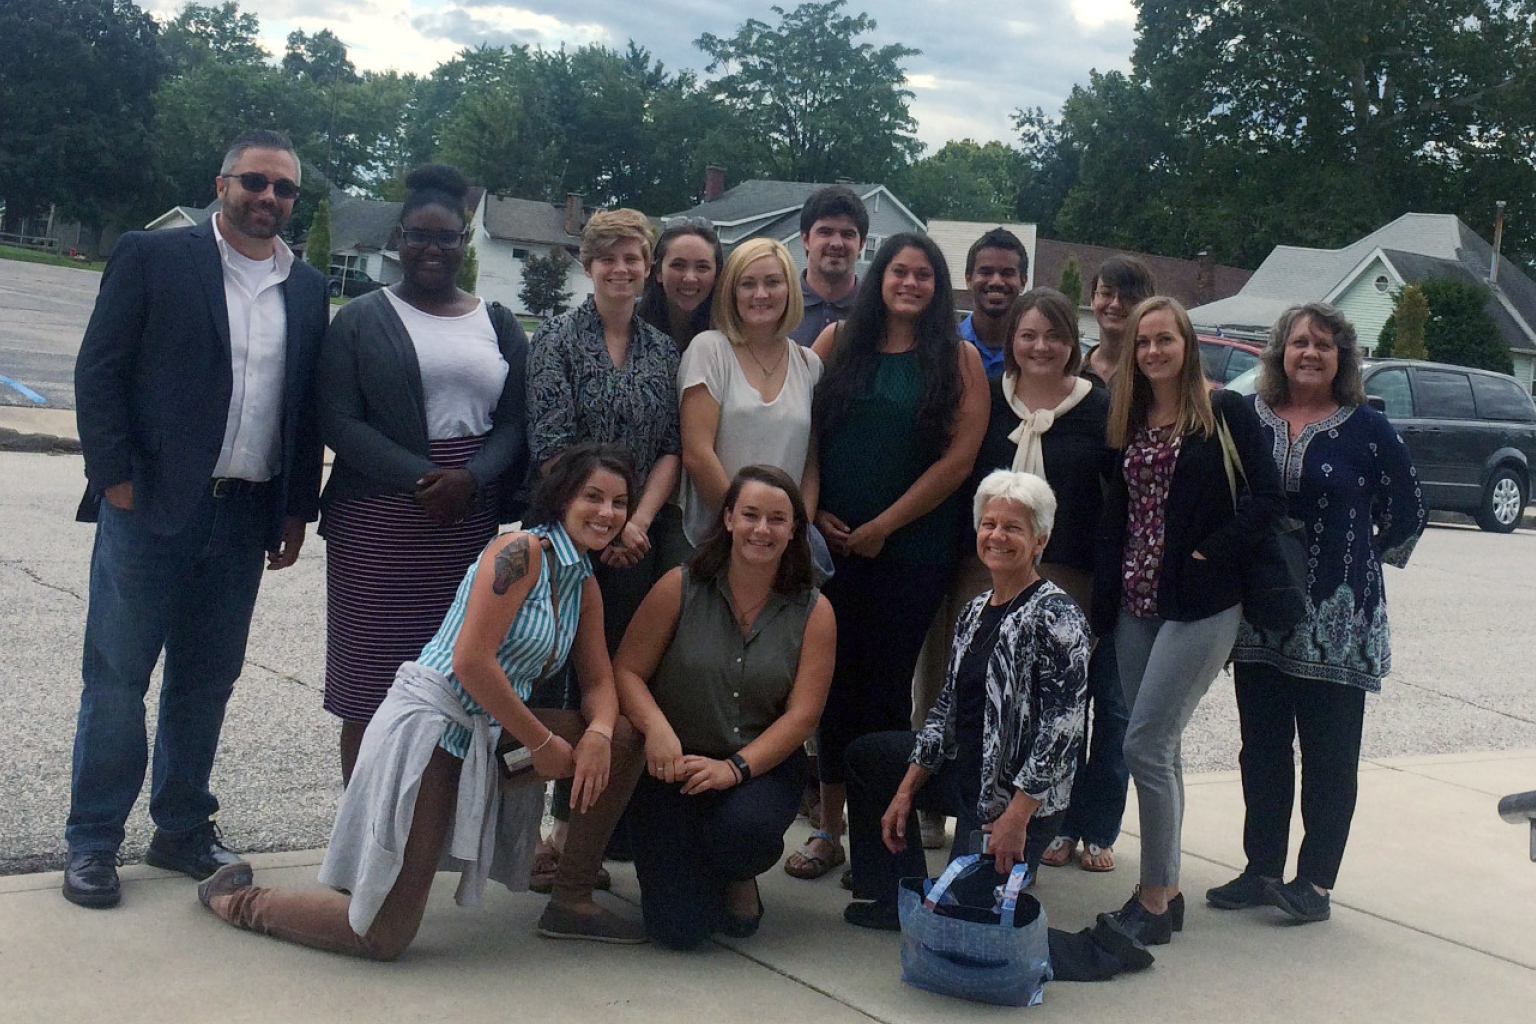 Master of Social Work students volunteering with Lawrence County to address addiction issues.